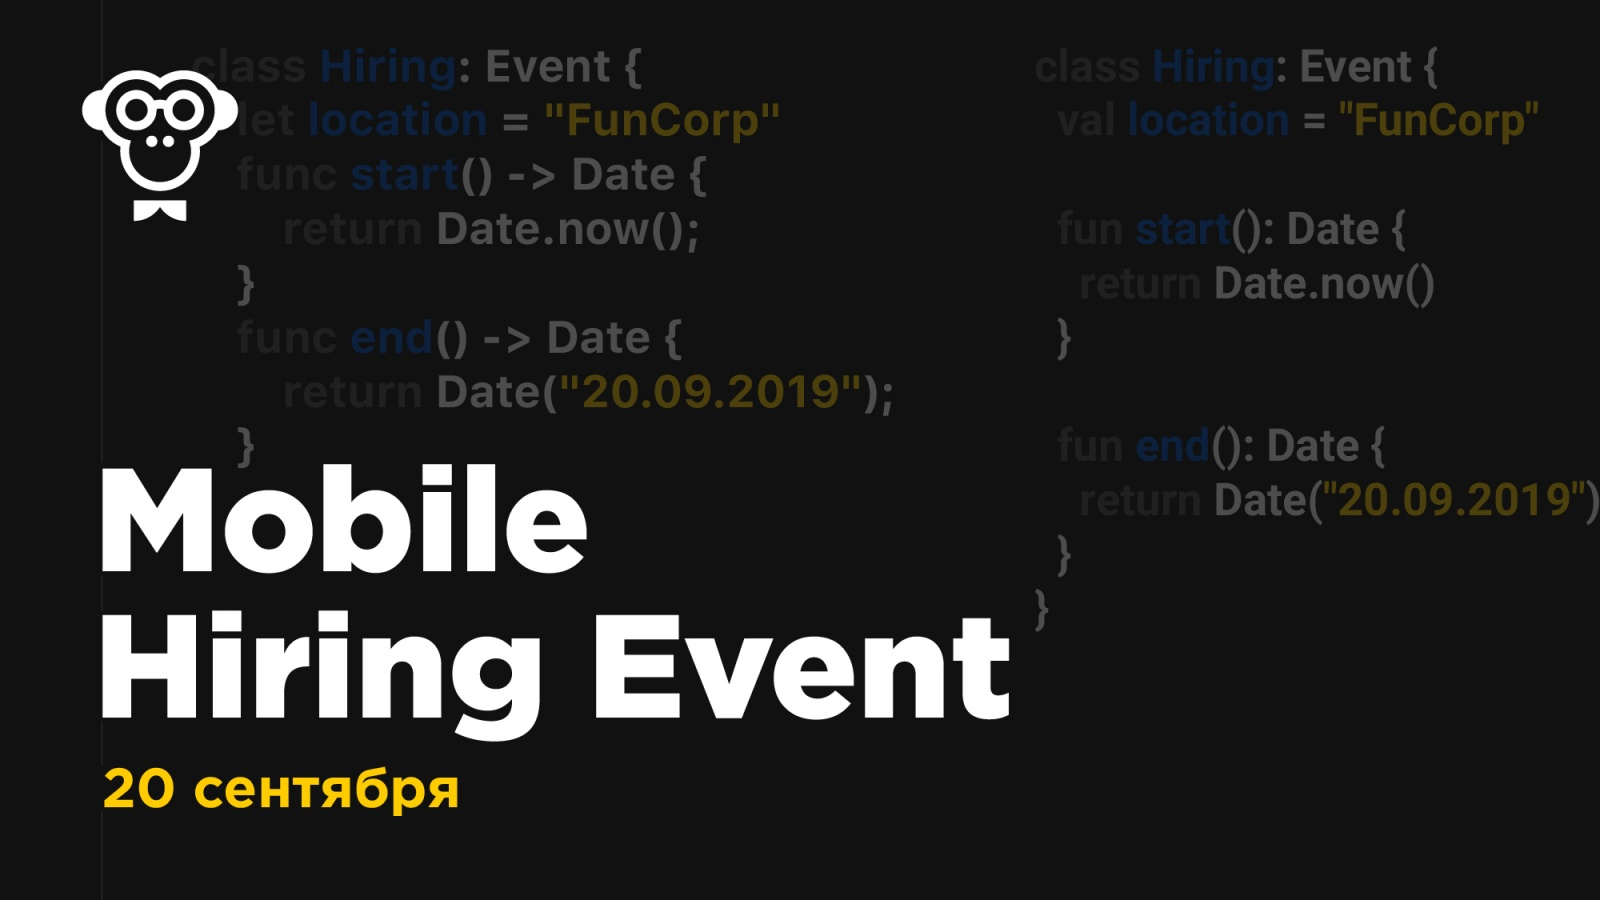 FunCorp Mobile Hiring Event - 1